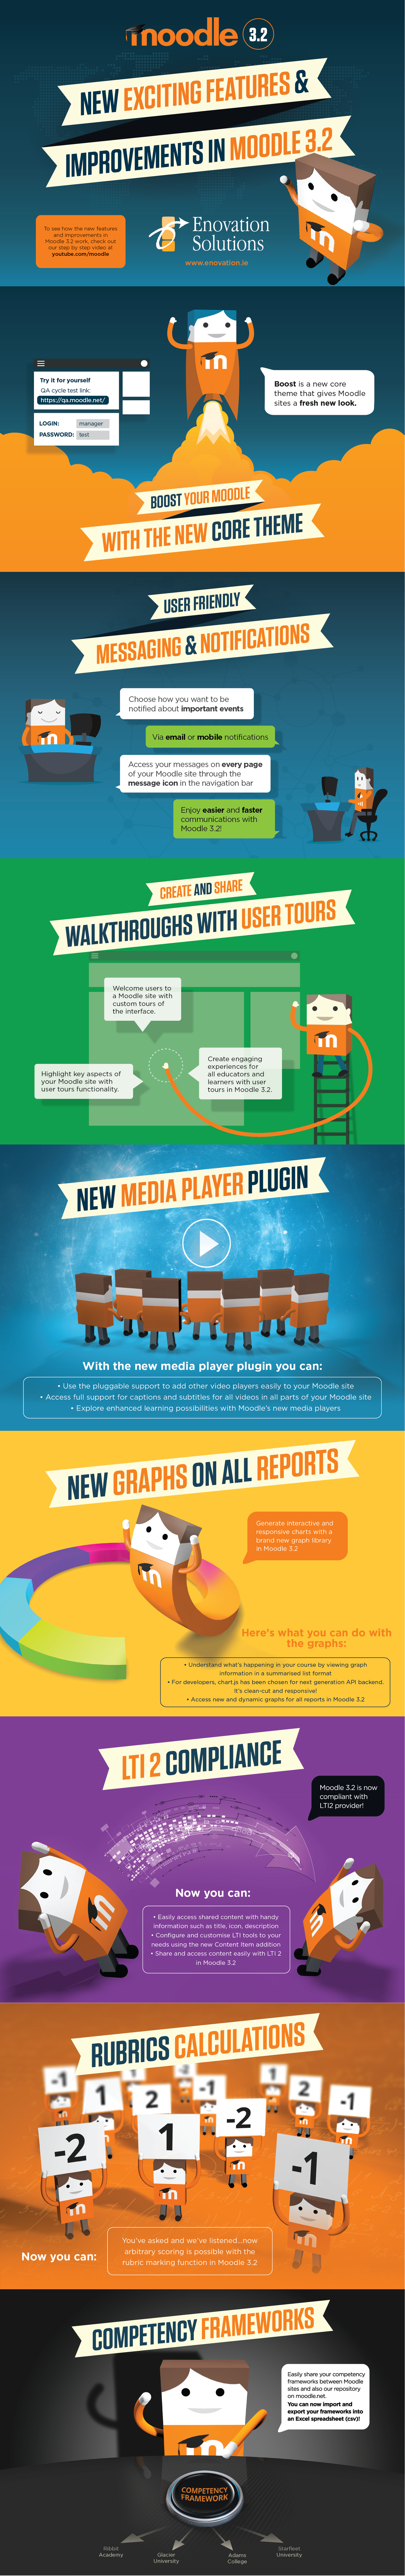 Moodle 3.2 Infographic